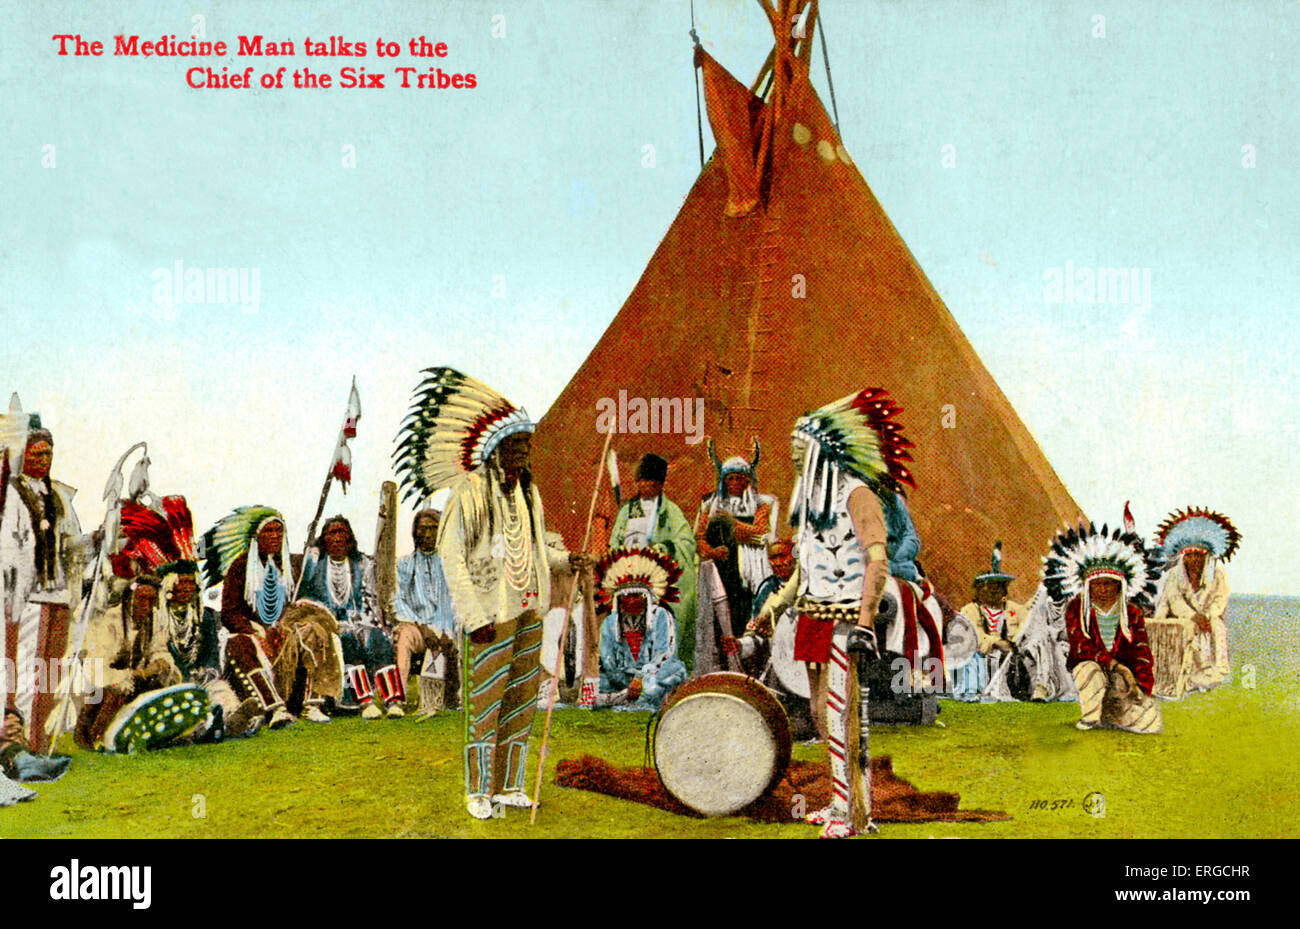 The Medicine Man talks to the Chief of the Six Tribes (also known as the Six Nations or Iroquois): the Mohawk, Oneida, - Stock Image